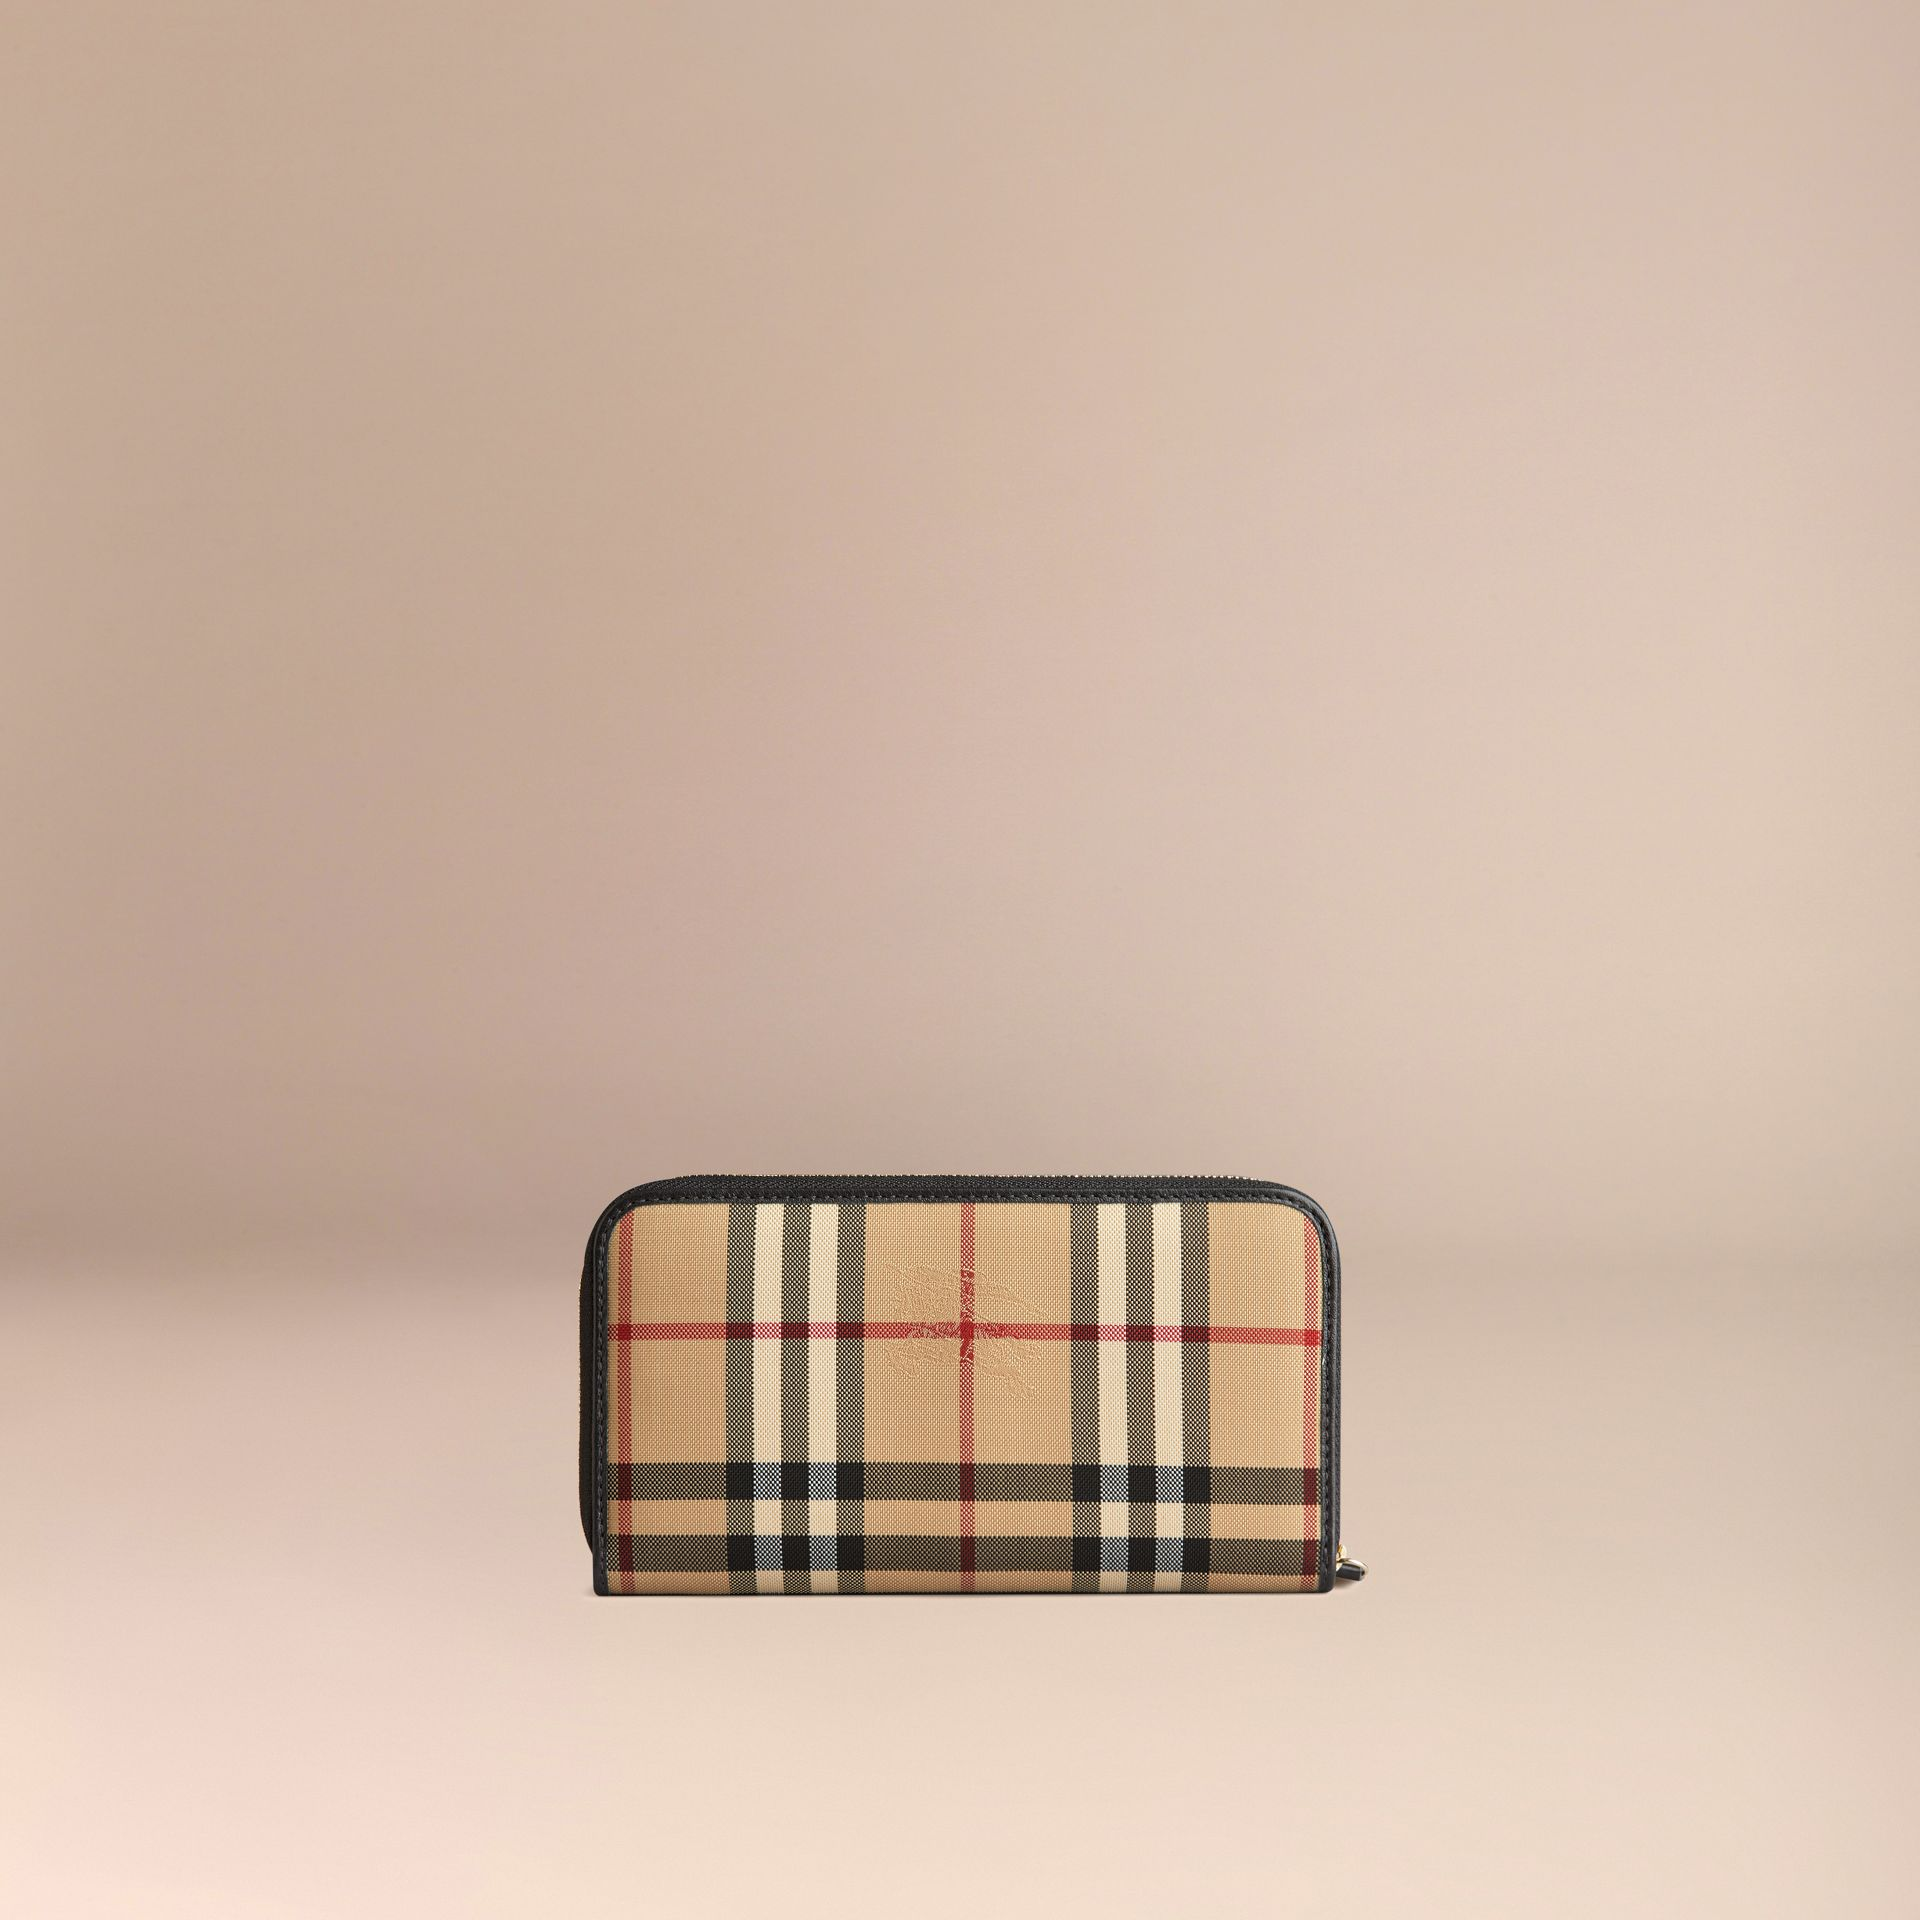 Horseferry Check and Leather Ziparound Wallet in Black - Women | Burberry Singapore - gallery image 3